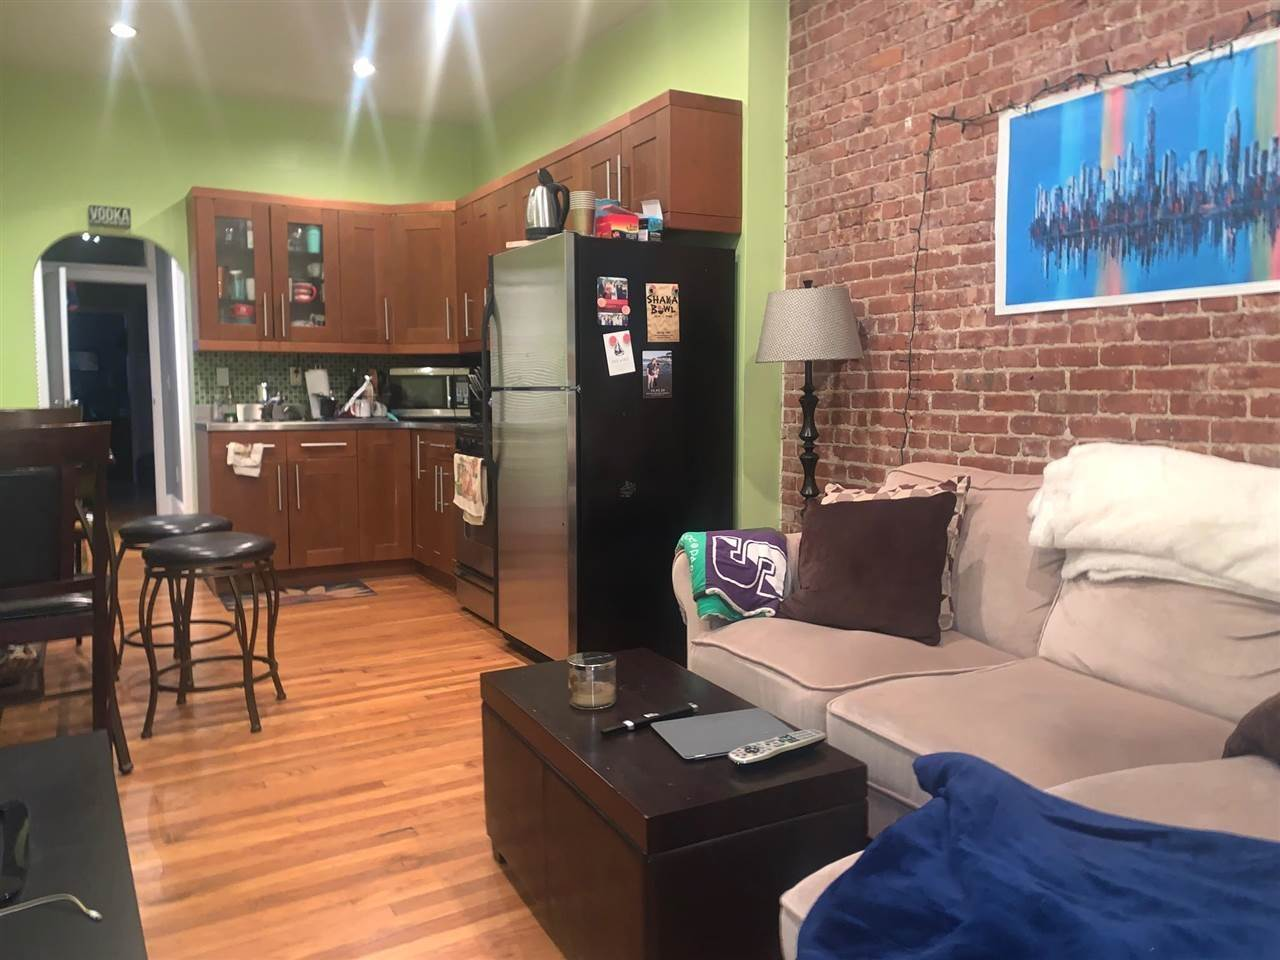 2. Single Family Home for Rent at 816 WILLOW AVENUE #4R Hoboken, New Jersey, 07030 United States